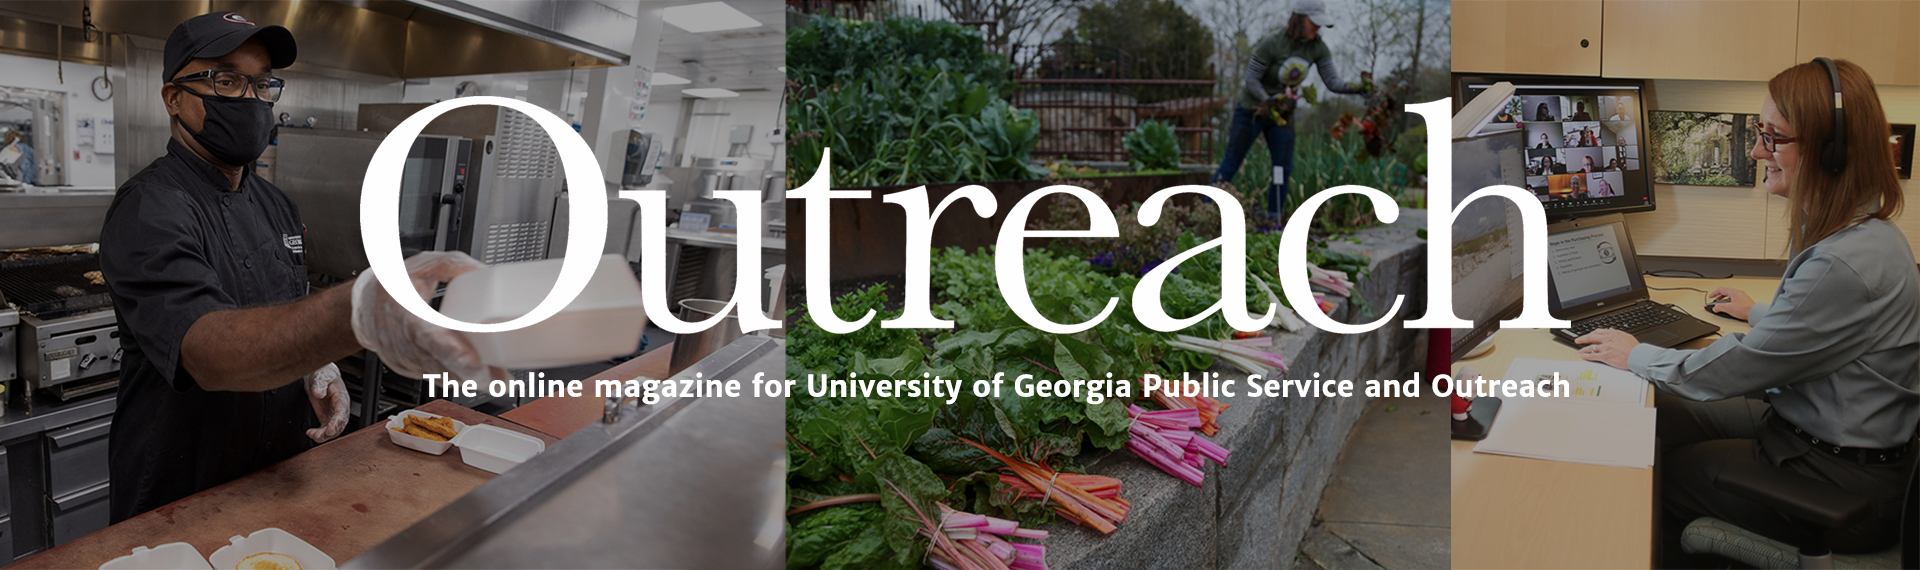 Graphic for the Public Service and Outreach online magazine